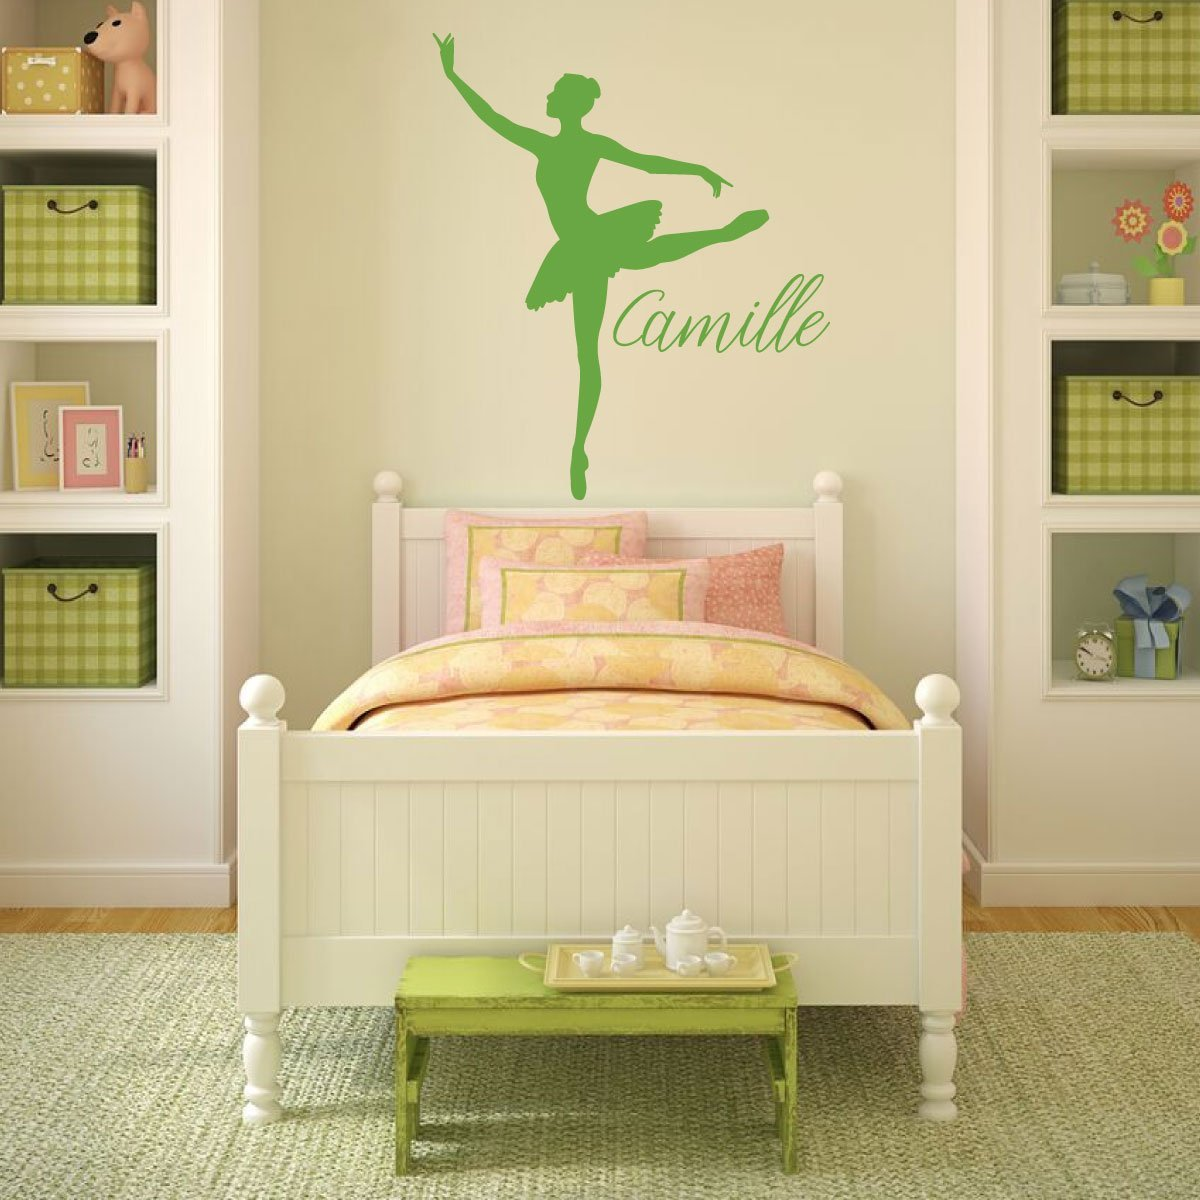 Personalized Ballet Vinyl Decal for Girls Room - Customized Color, Size, and Name Wall Sticker for Bedroom or Dance Studio